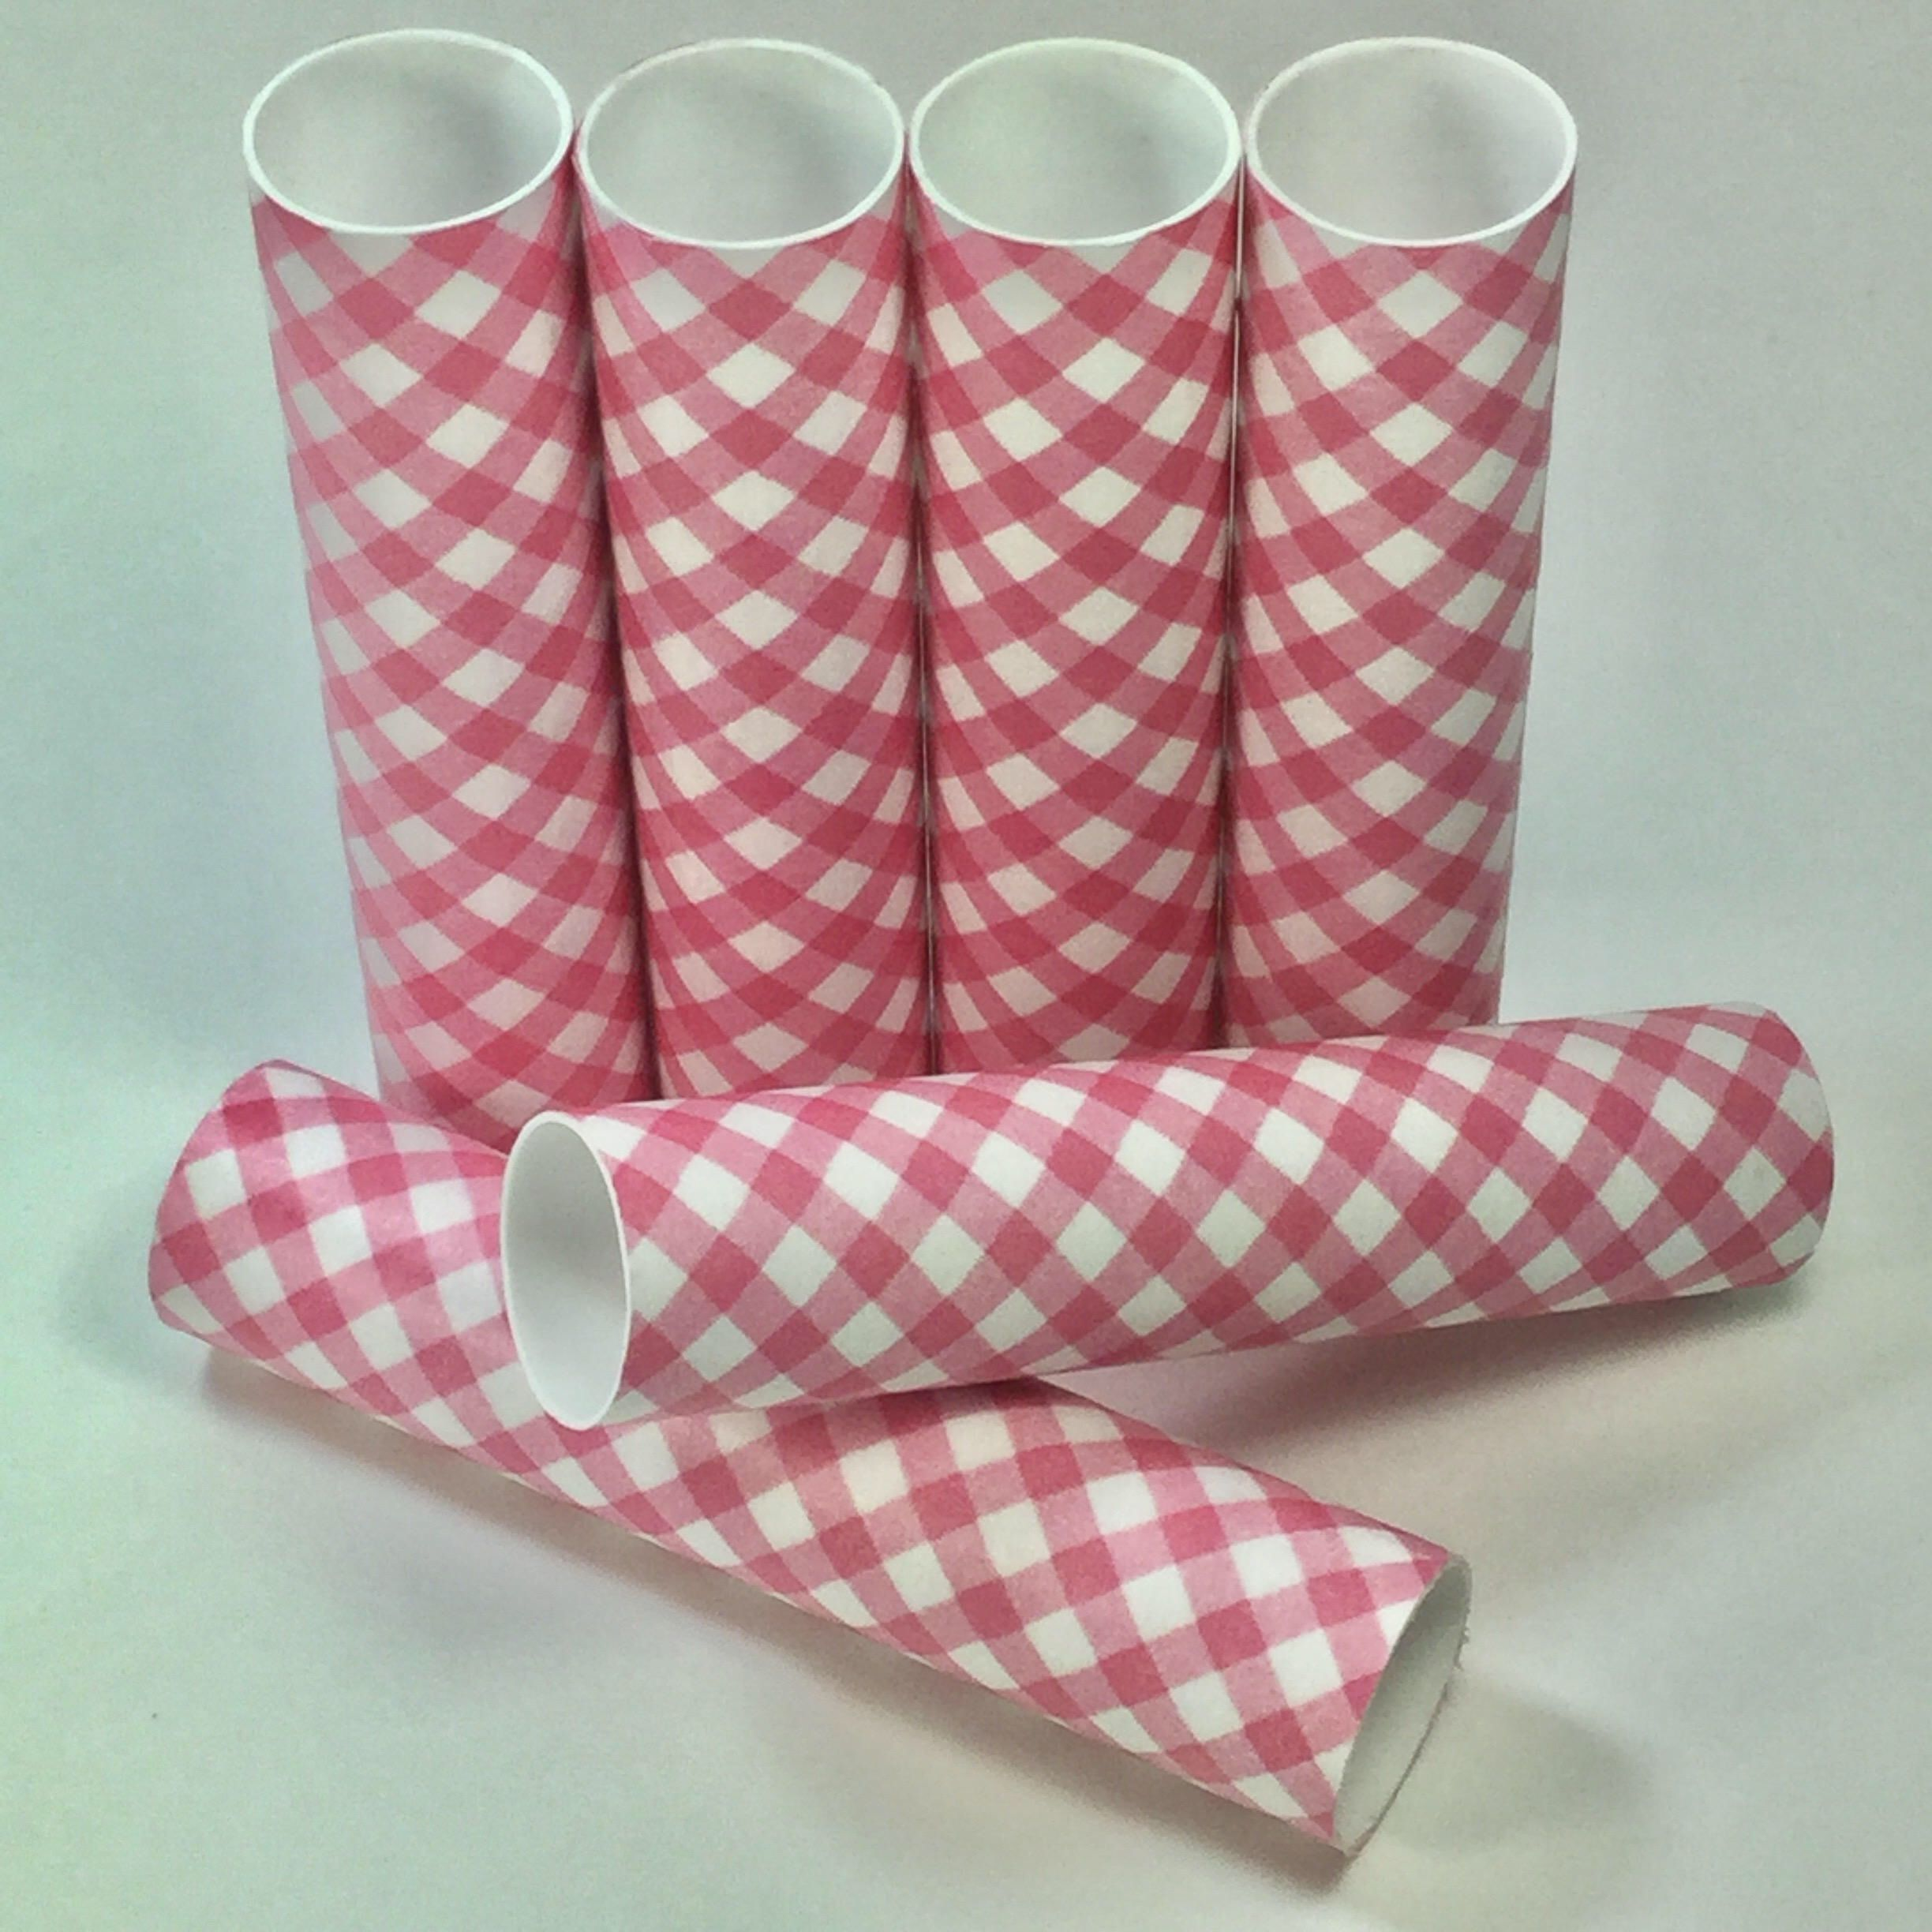 Pink and White Harlequin Diamond Check Plaid Candle Covers Set 6 ...